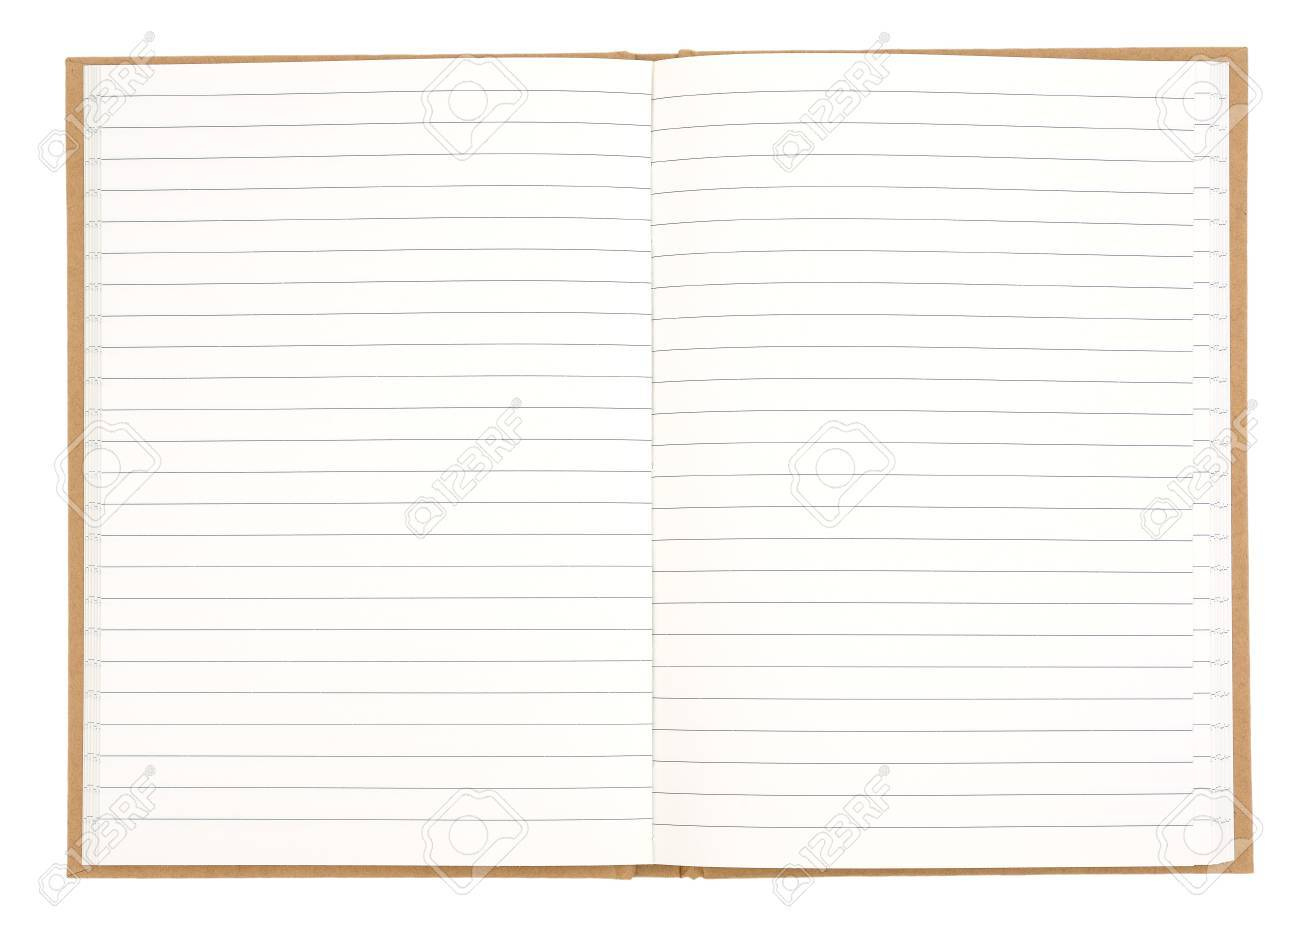 Blank Lined Exercise Book Isolated On White Background Stock Photo ...